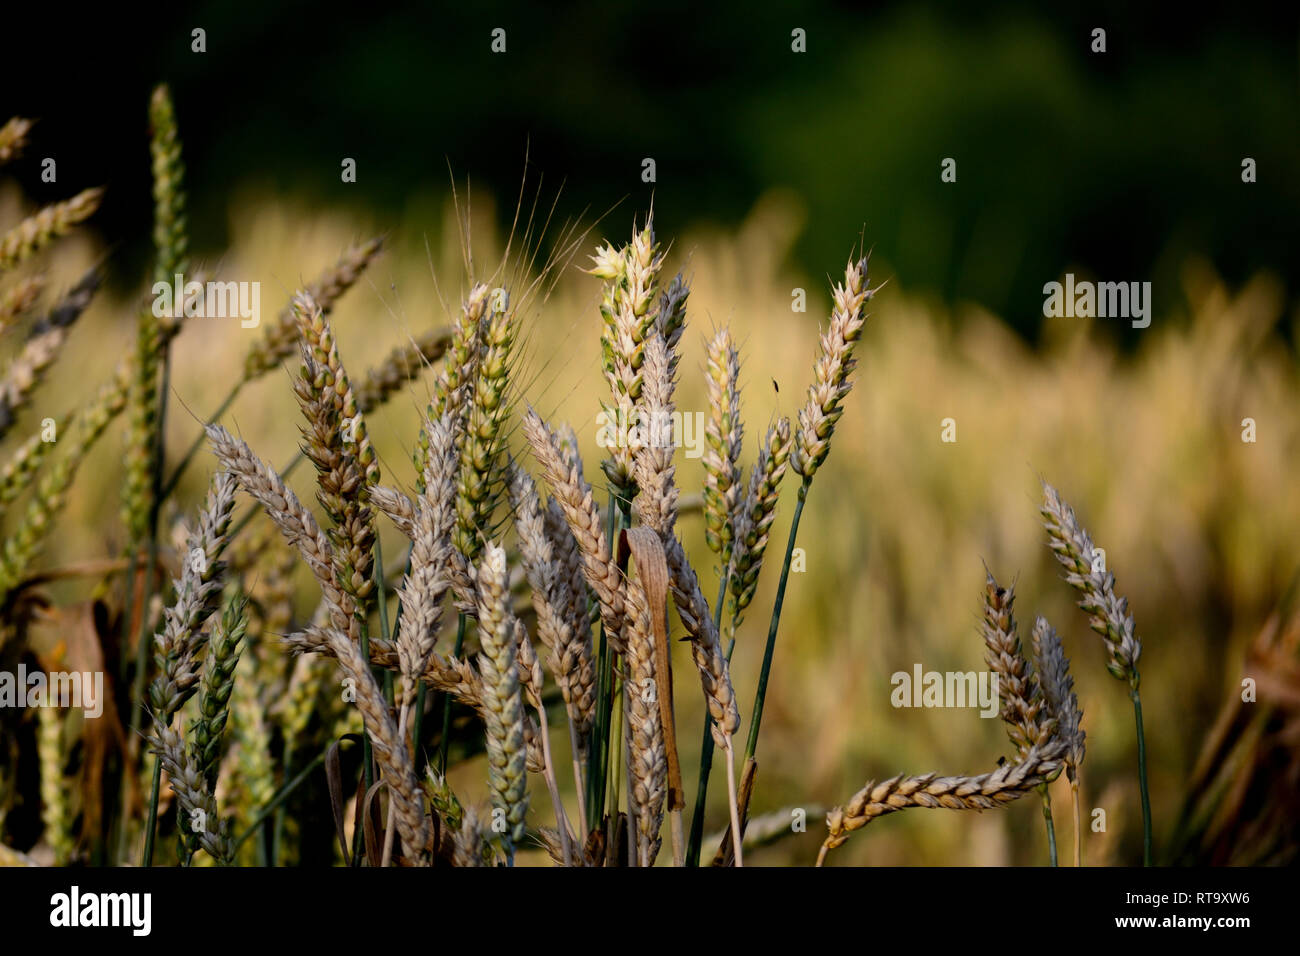 30 Liter Emmer Emmer Stock Photos Emmer Stock Images Alamy